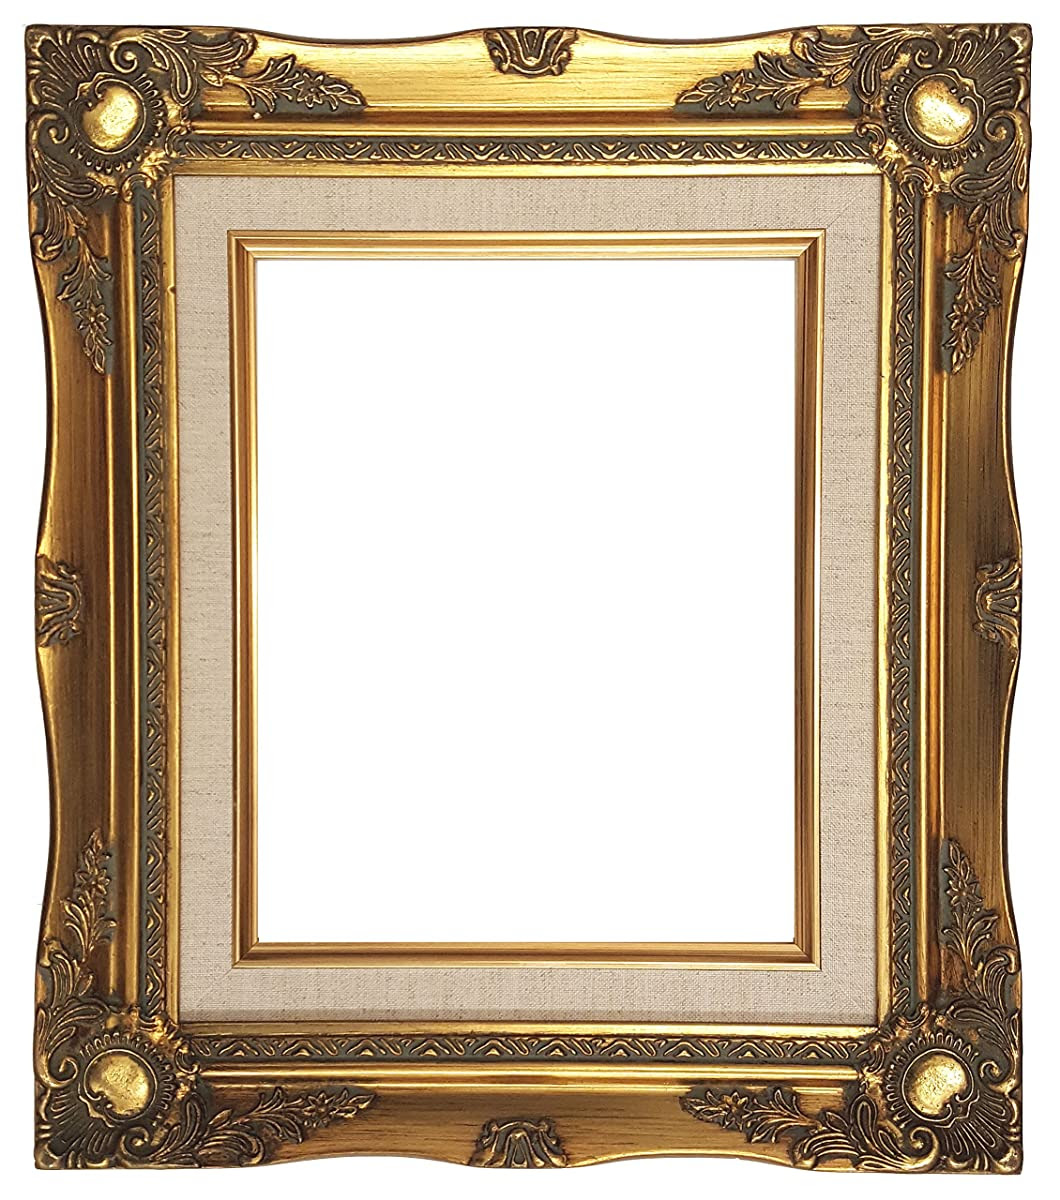 Ornate Baroque Gold Painted Wooden Frame With Cream Linen Liner